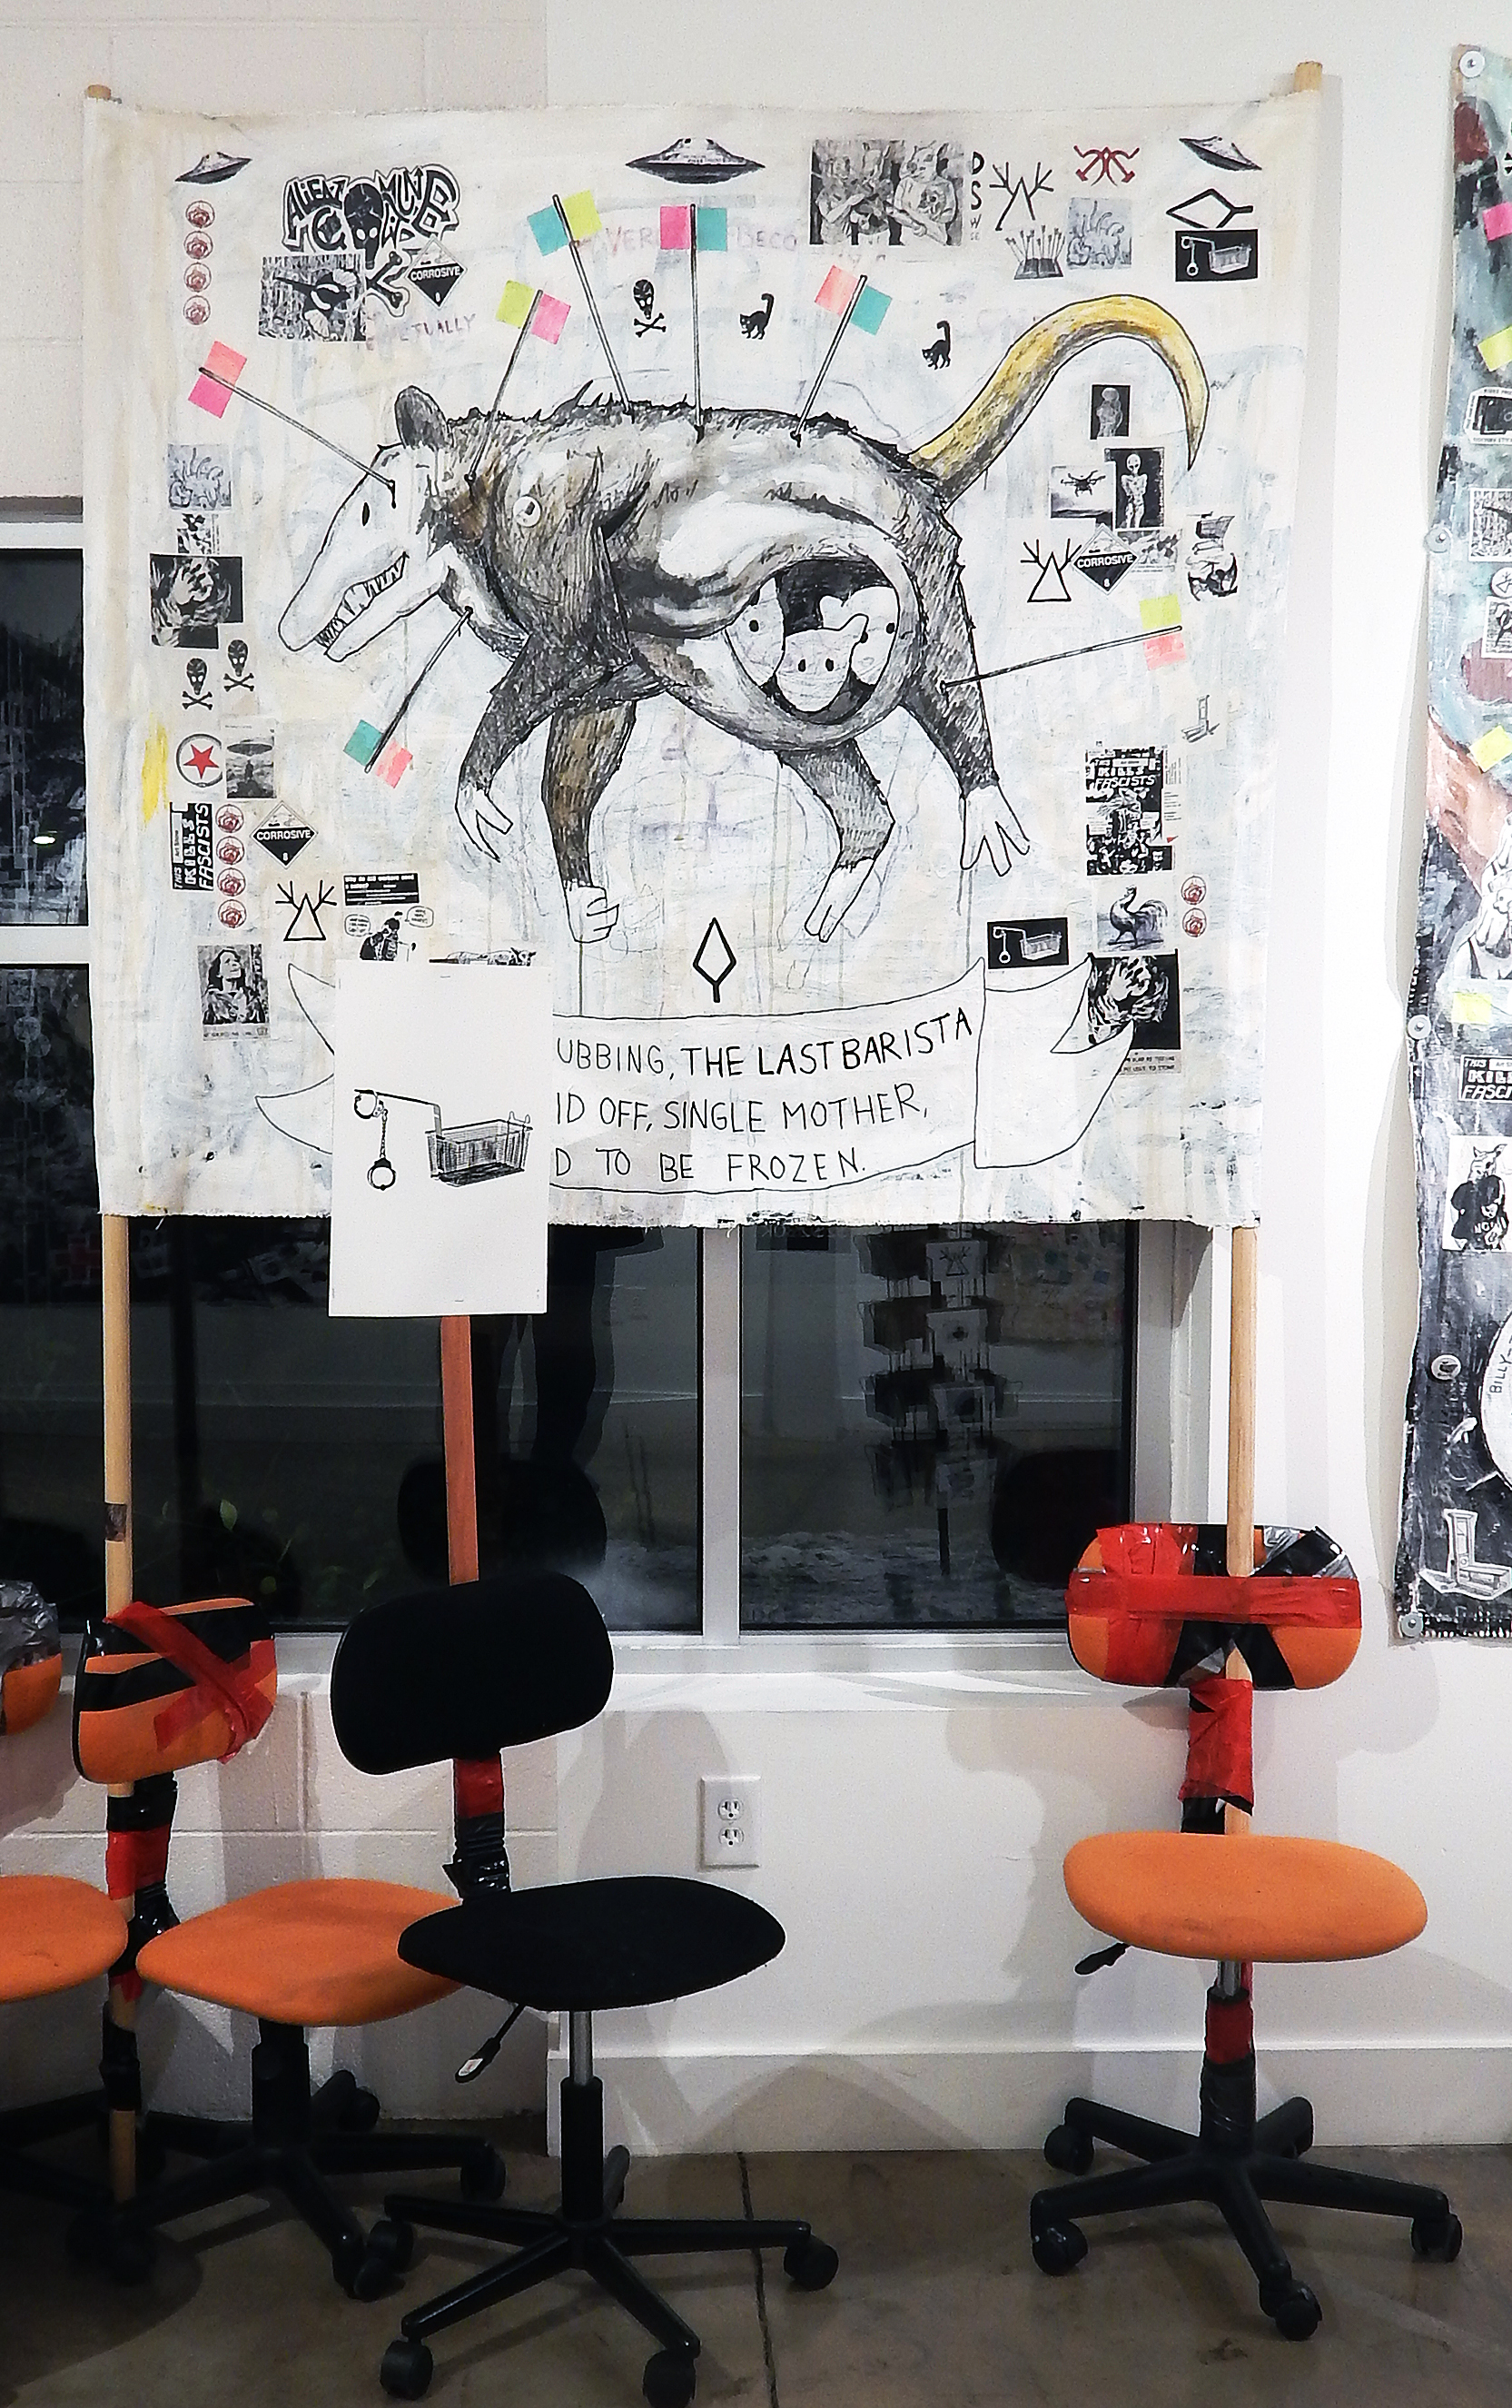 The Last Barista.  Acrylic, stickers, marker, photocopies, buttons, post-it notes, coffee and mixed media on canvas banner with poles (installation view). (2018) (Adam Turl)